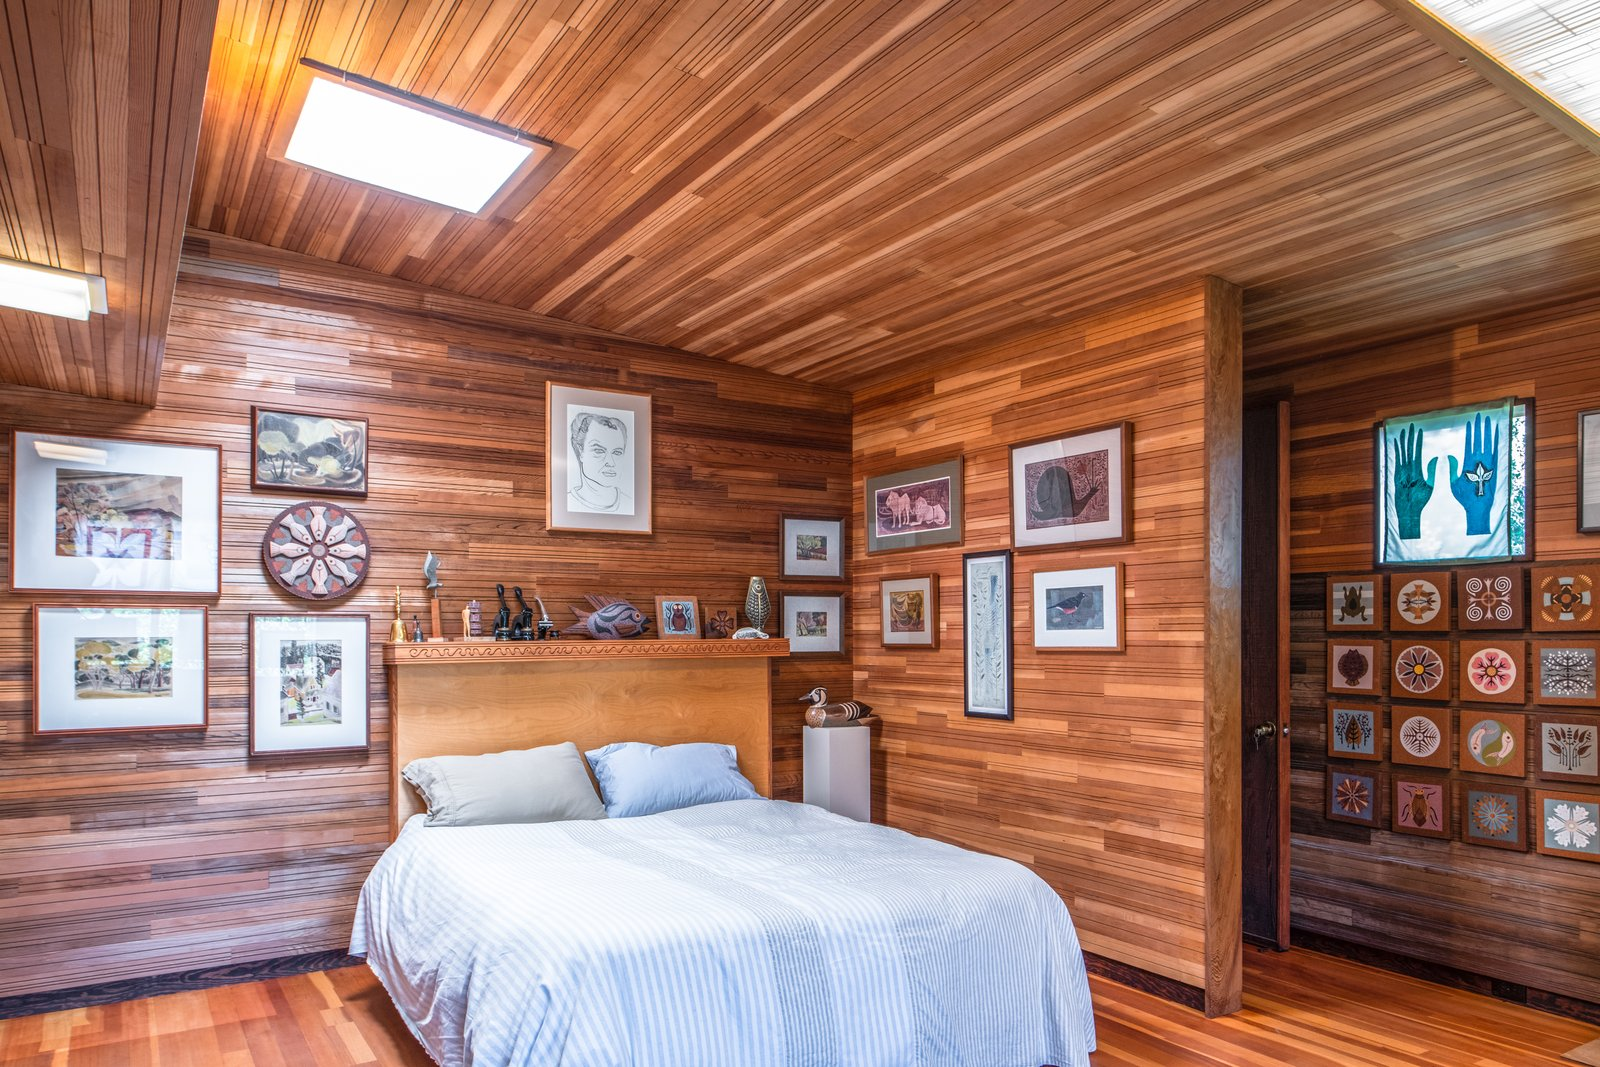 Bedroom, Bed, Storage, Night Stands, Light Hardwood Floor, and Ceiling Lighting Locally milled wood clads the interior of this massive artist's compound.   Photo 5 of 10 in Renowned Artist Emile Norman's Sensational Big Sur Home Lists for $2M